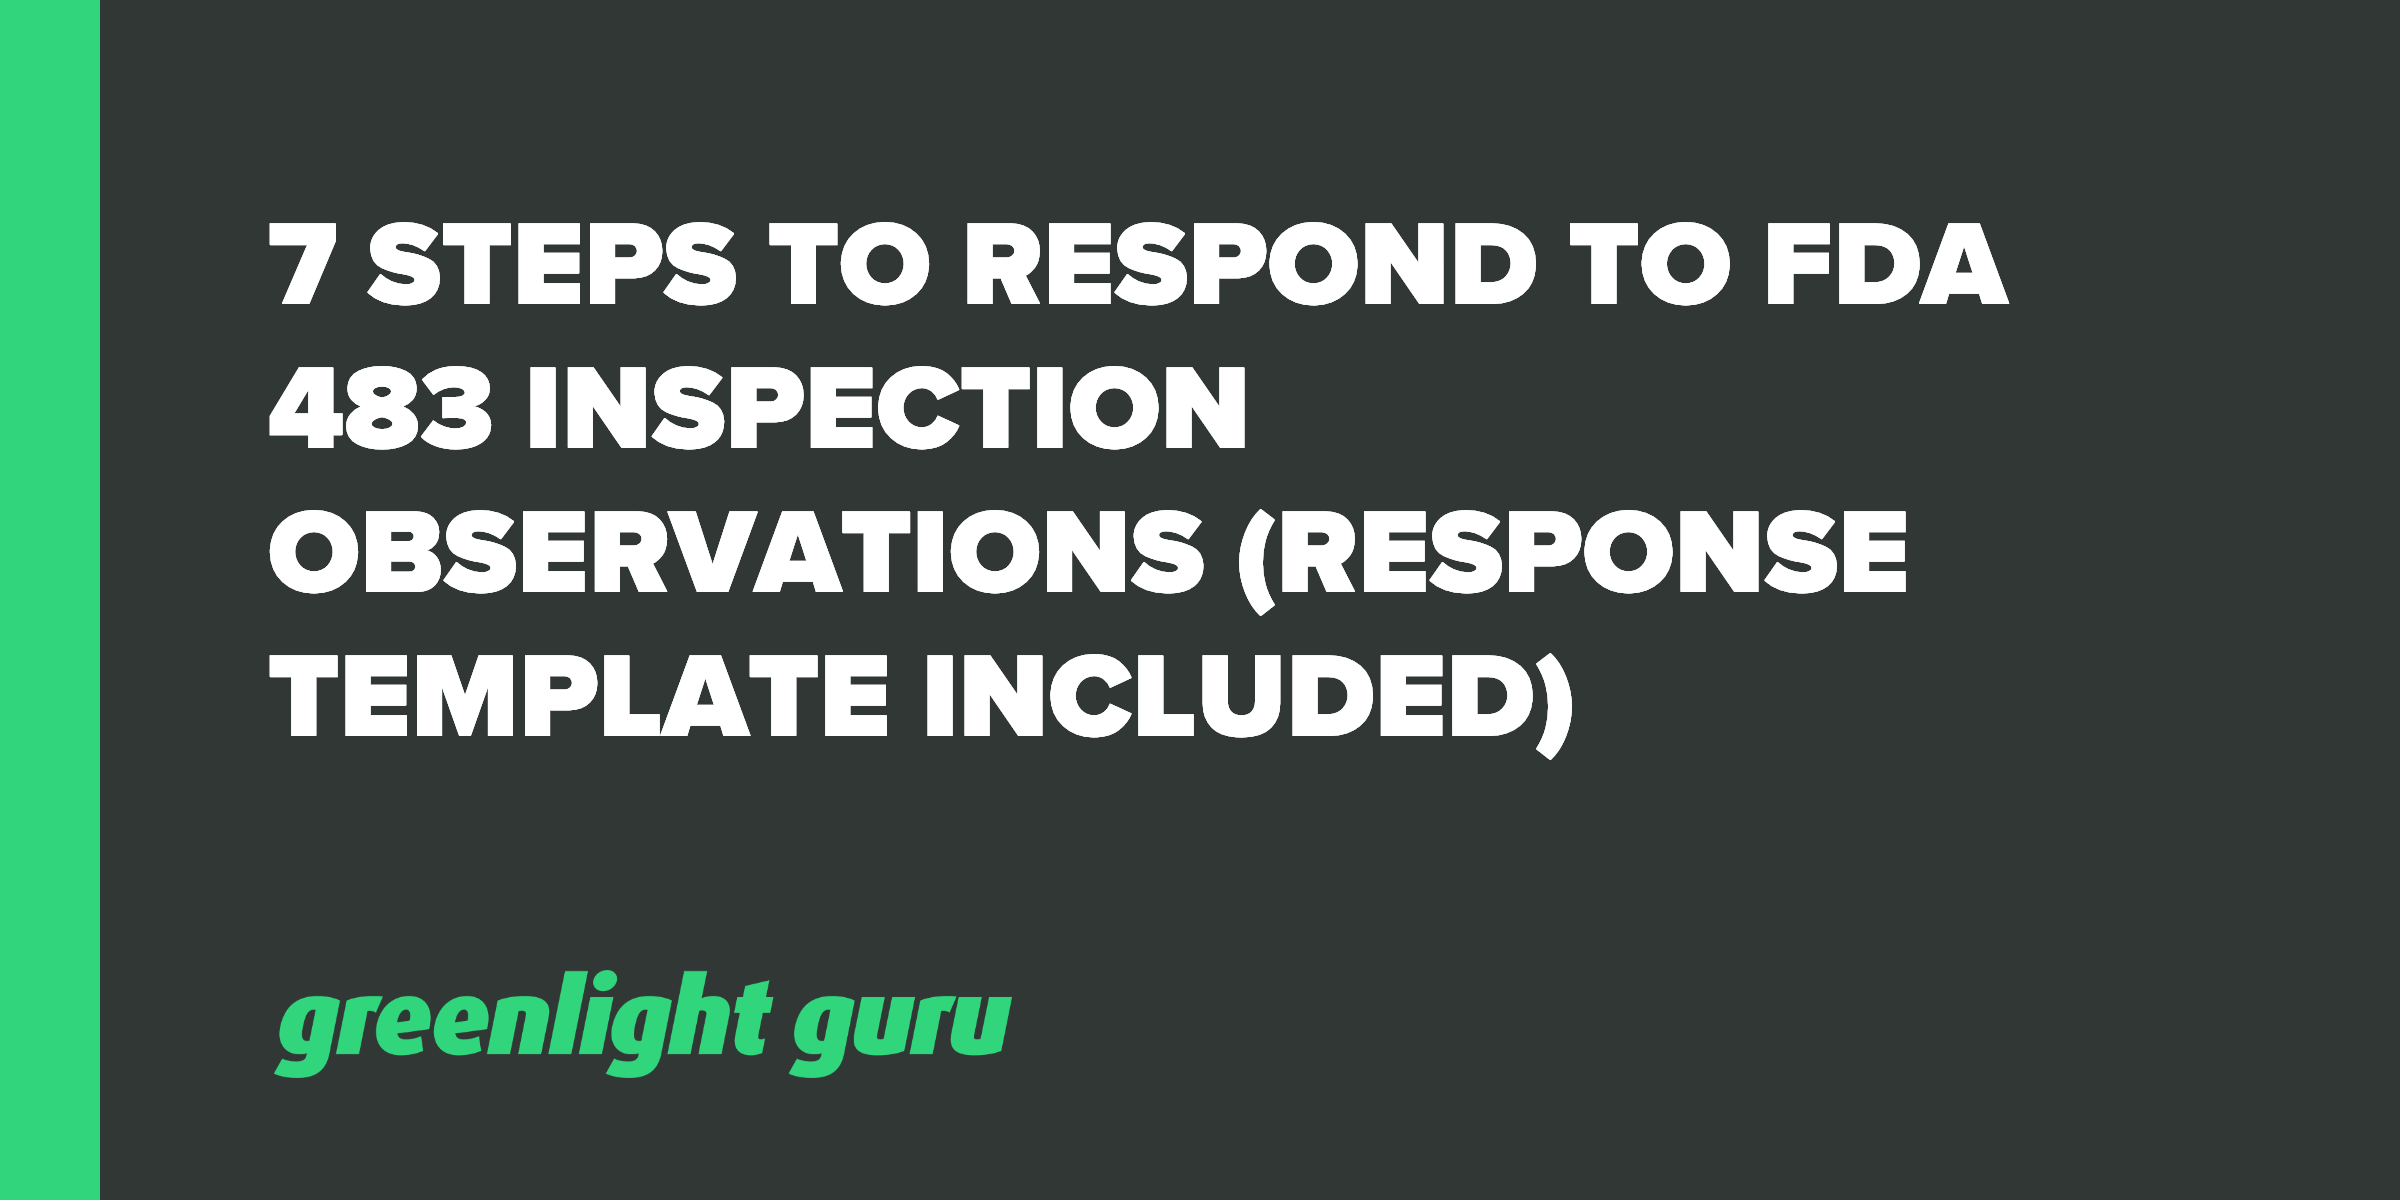 7 Steps to Respond to FDA 483 Inspection Observations (Response Template Included)